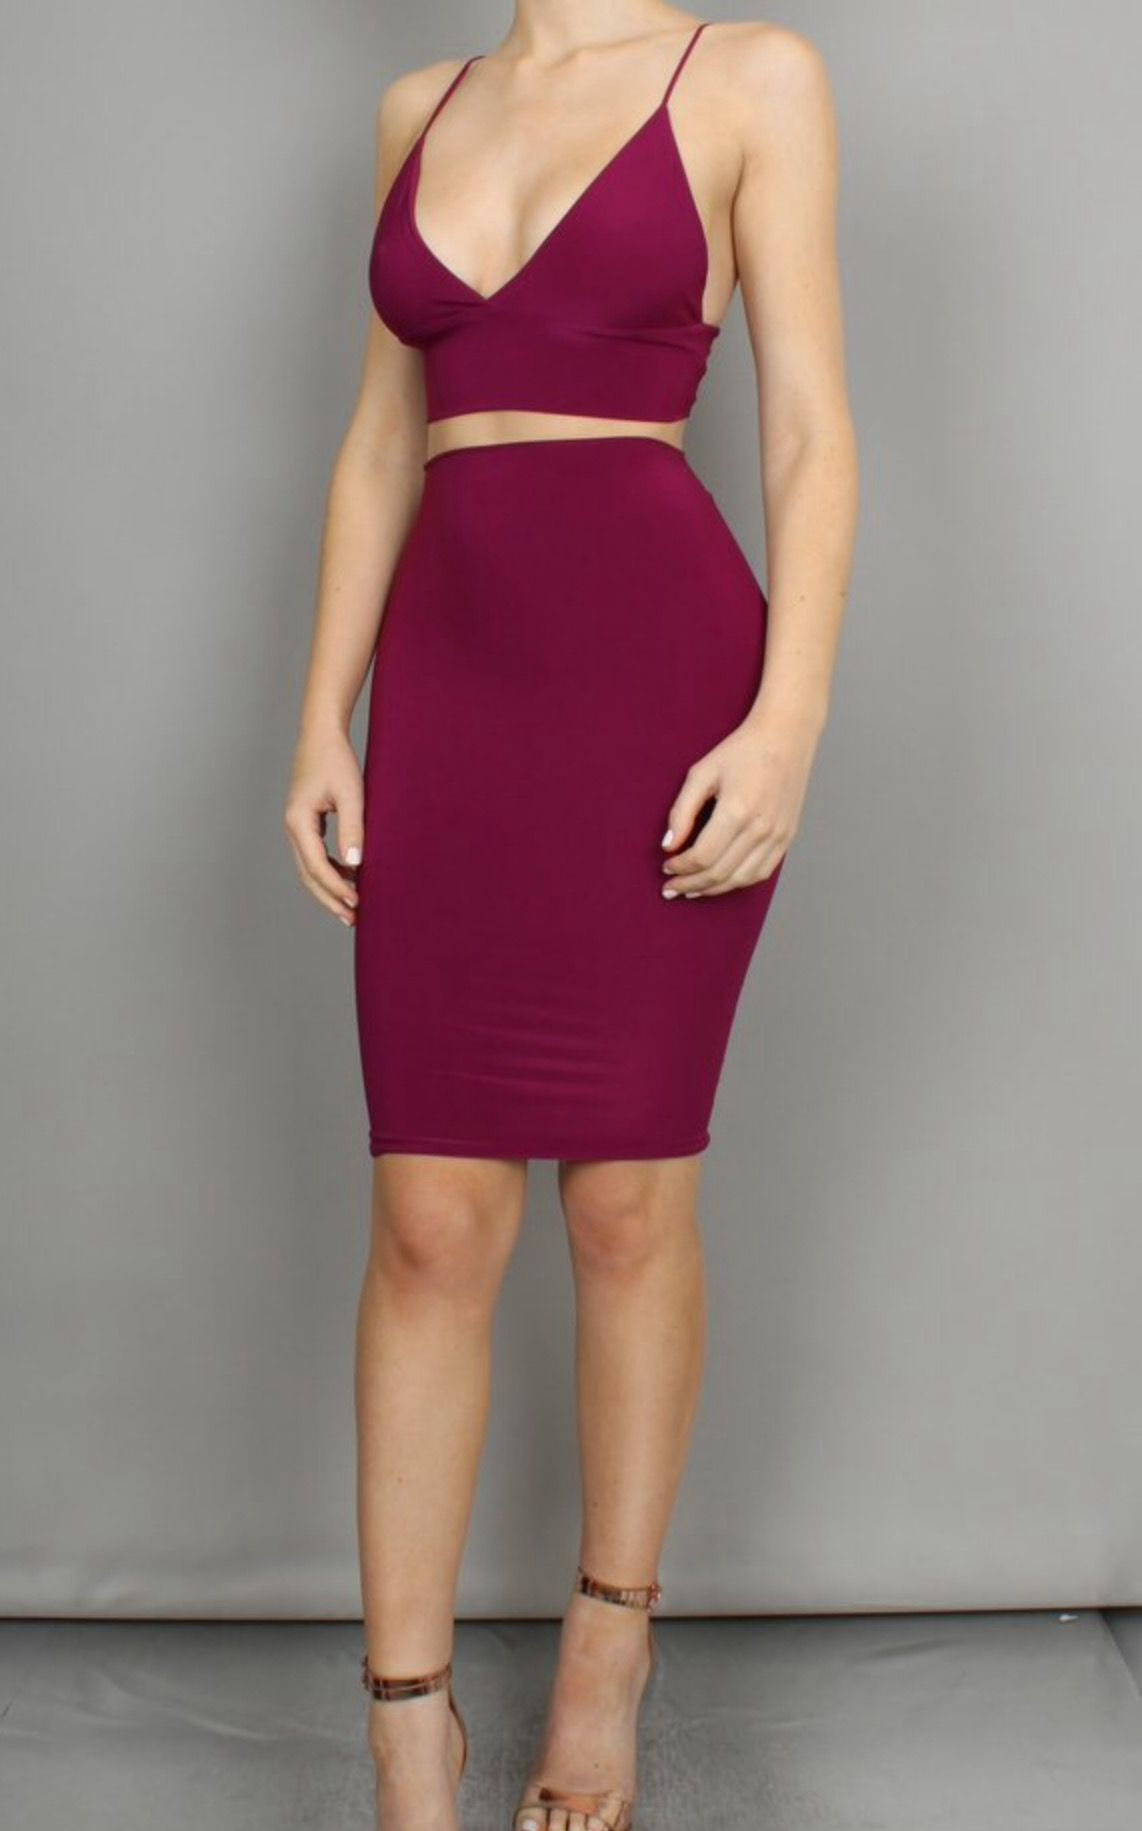 Pin By Lesley Nunez On Outfits Fashion Bodycon Dress 2 Piece Outfits [ 1831 x 1142 Pixel ]